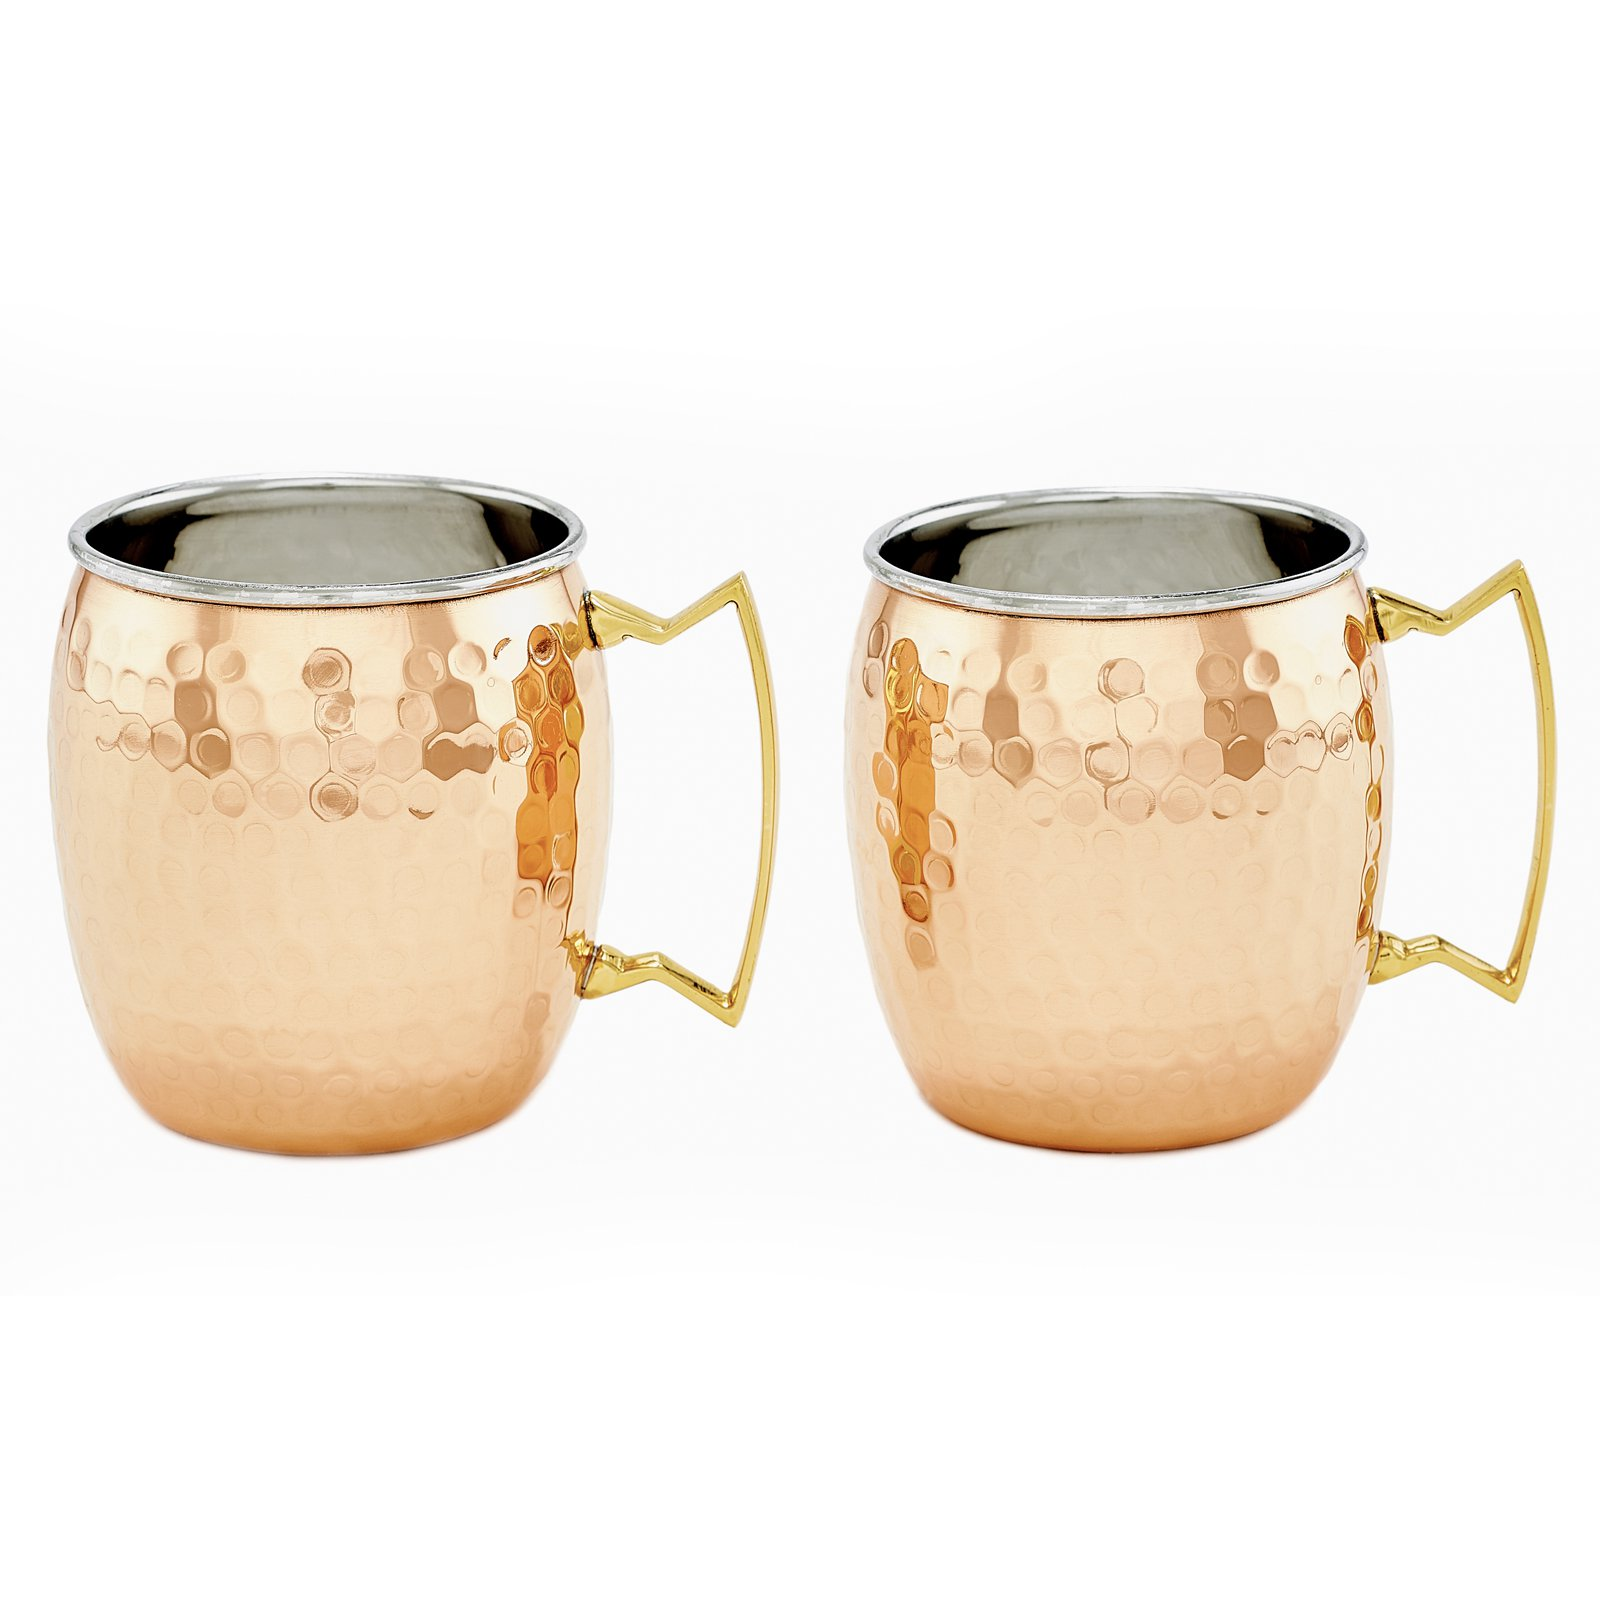 Old Dutch Copper Moscow Mule Mugs - Set of 2